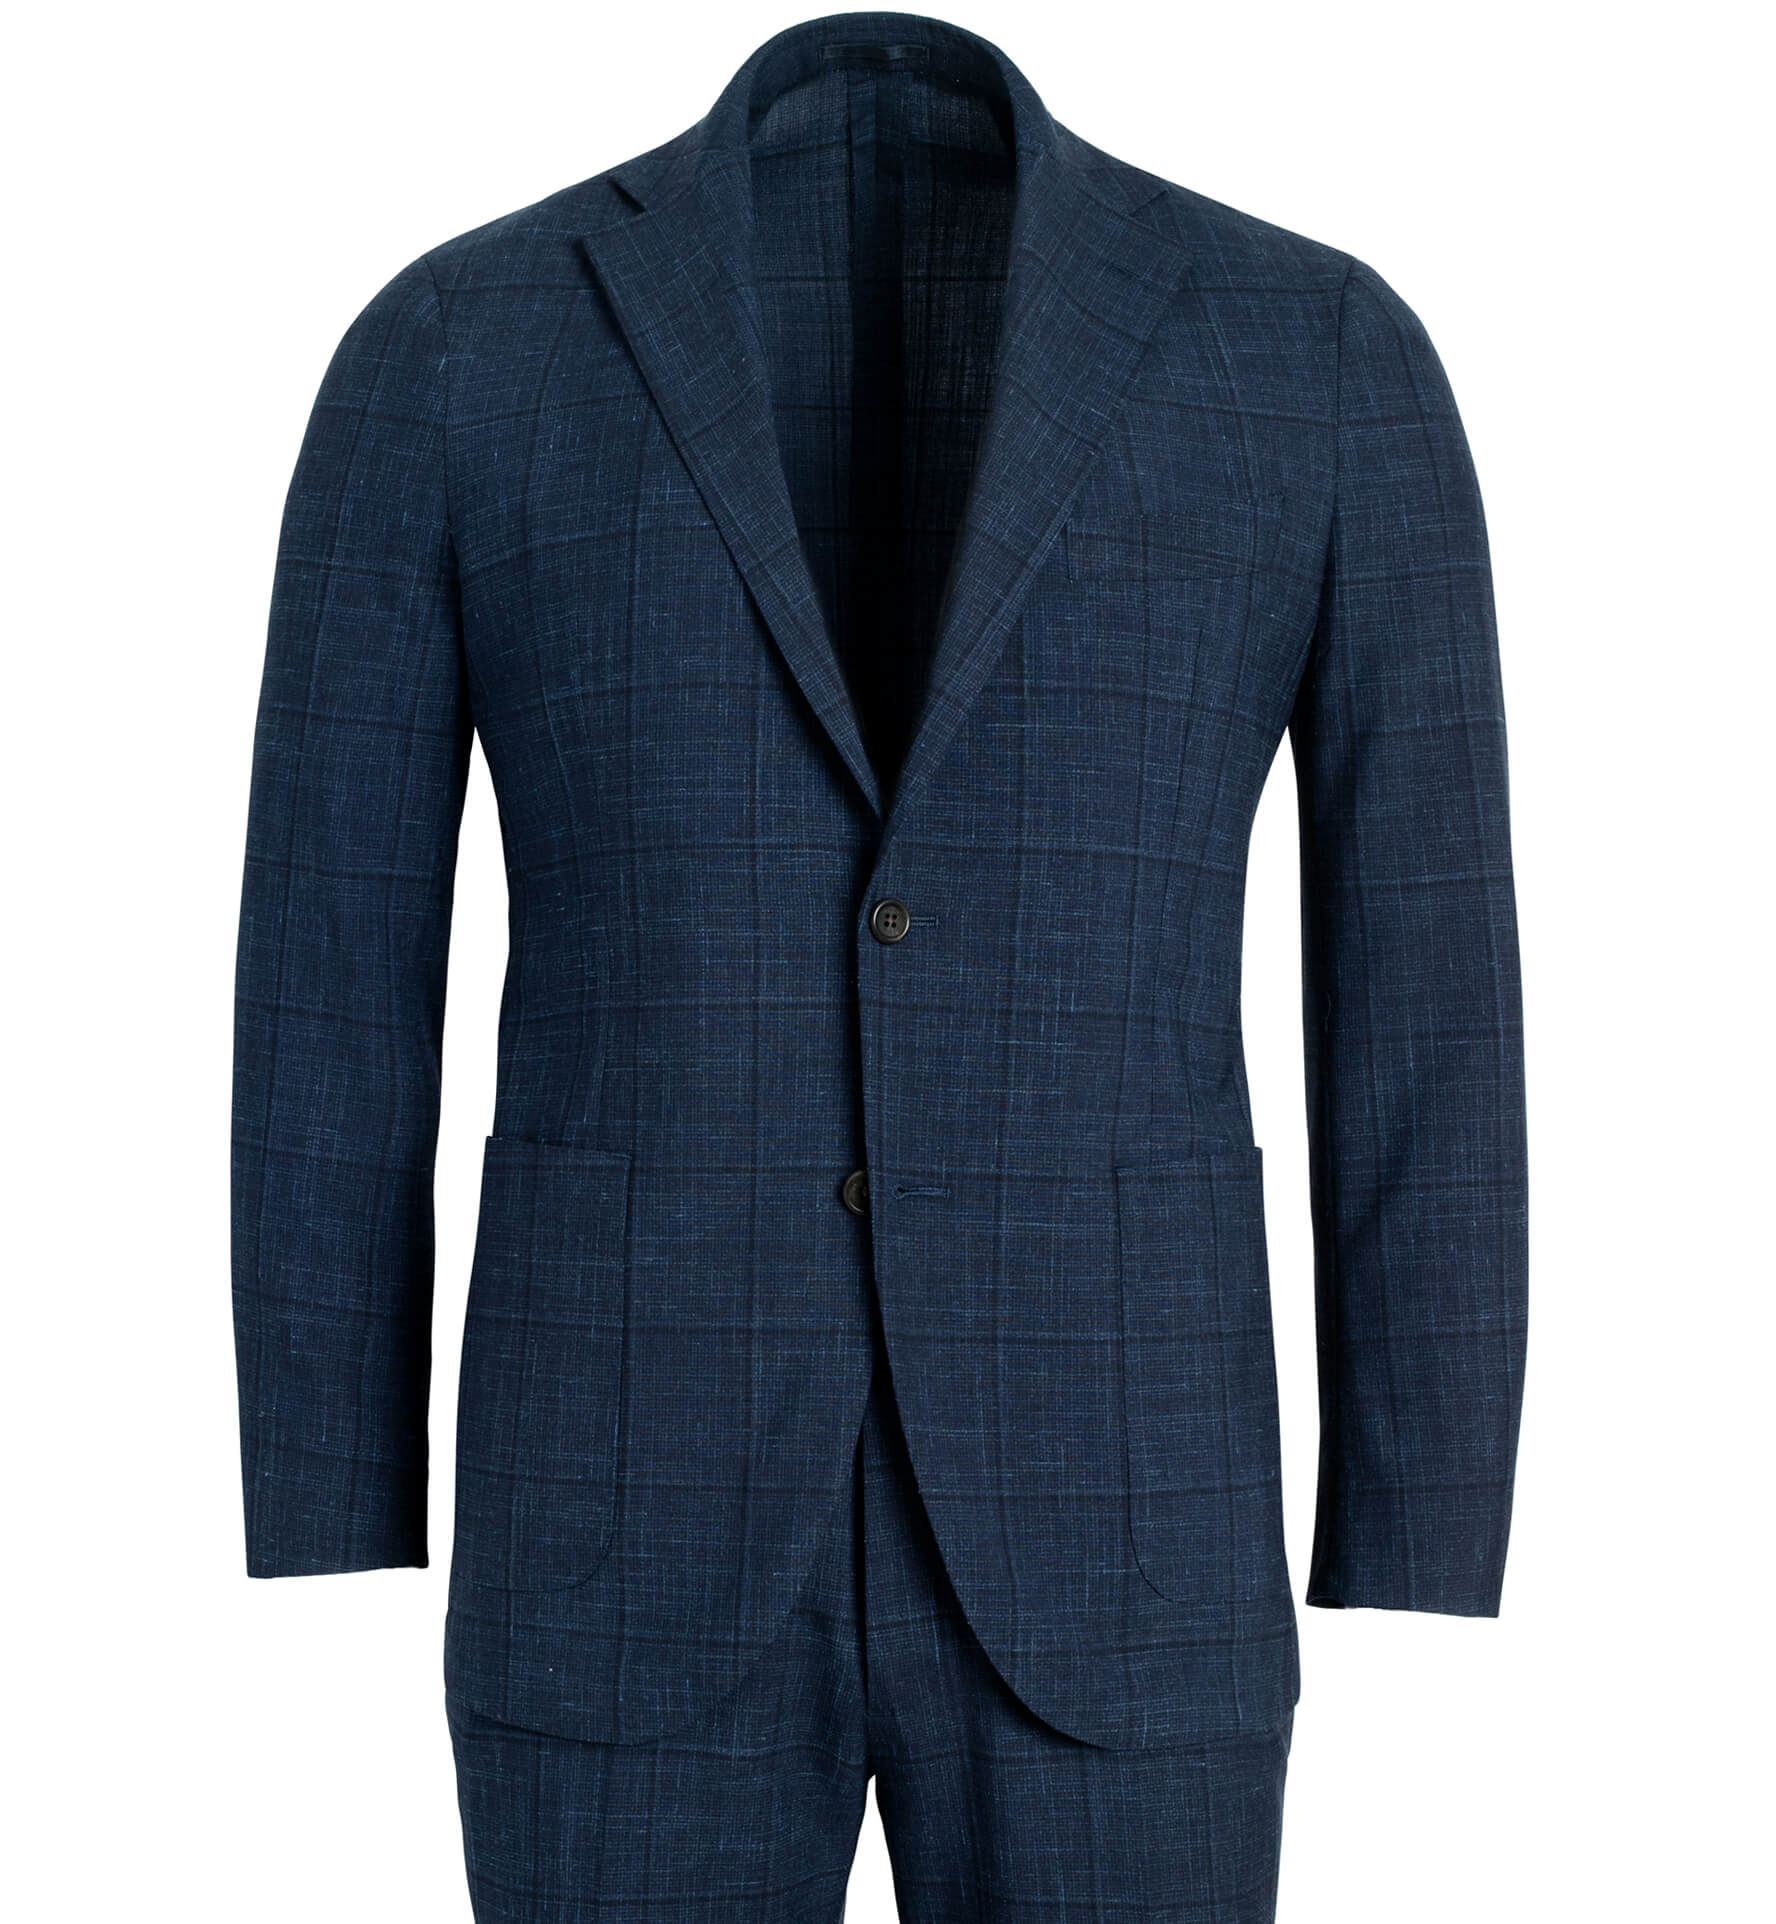 Zoom Image of Bedford Navy Windowpane Suit